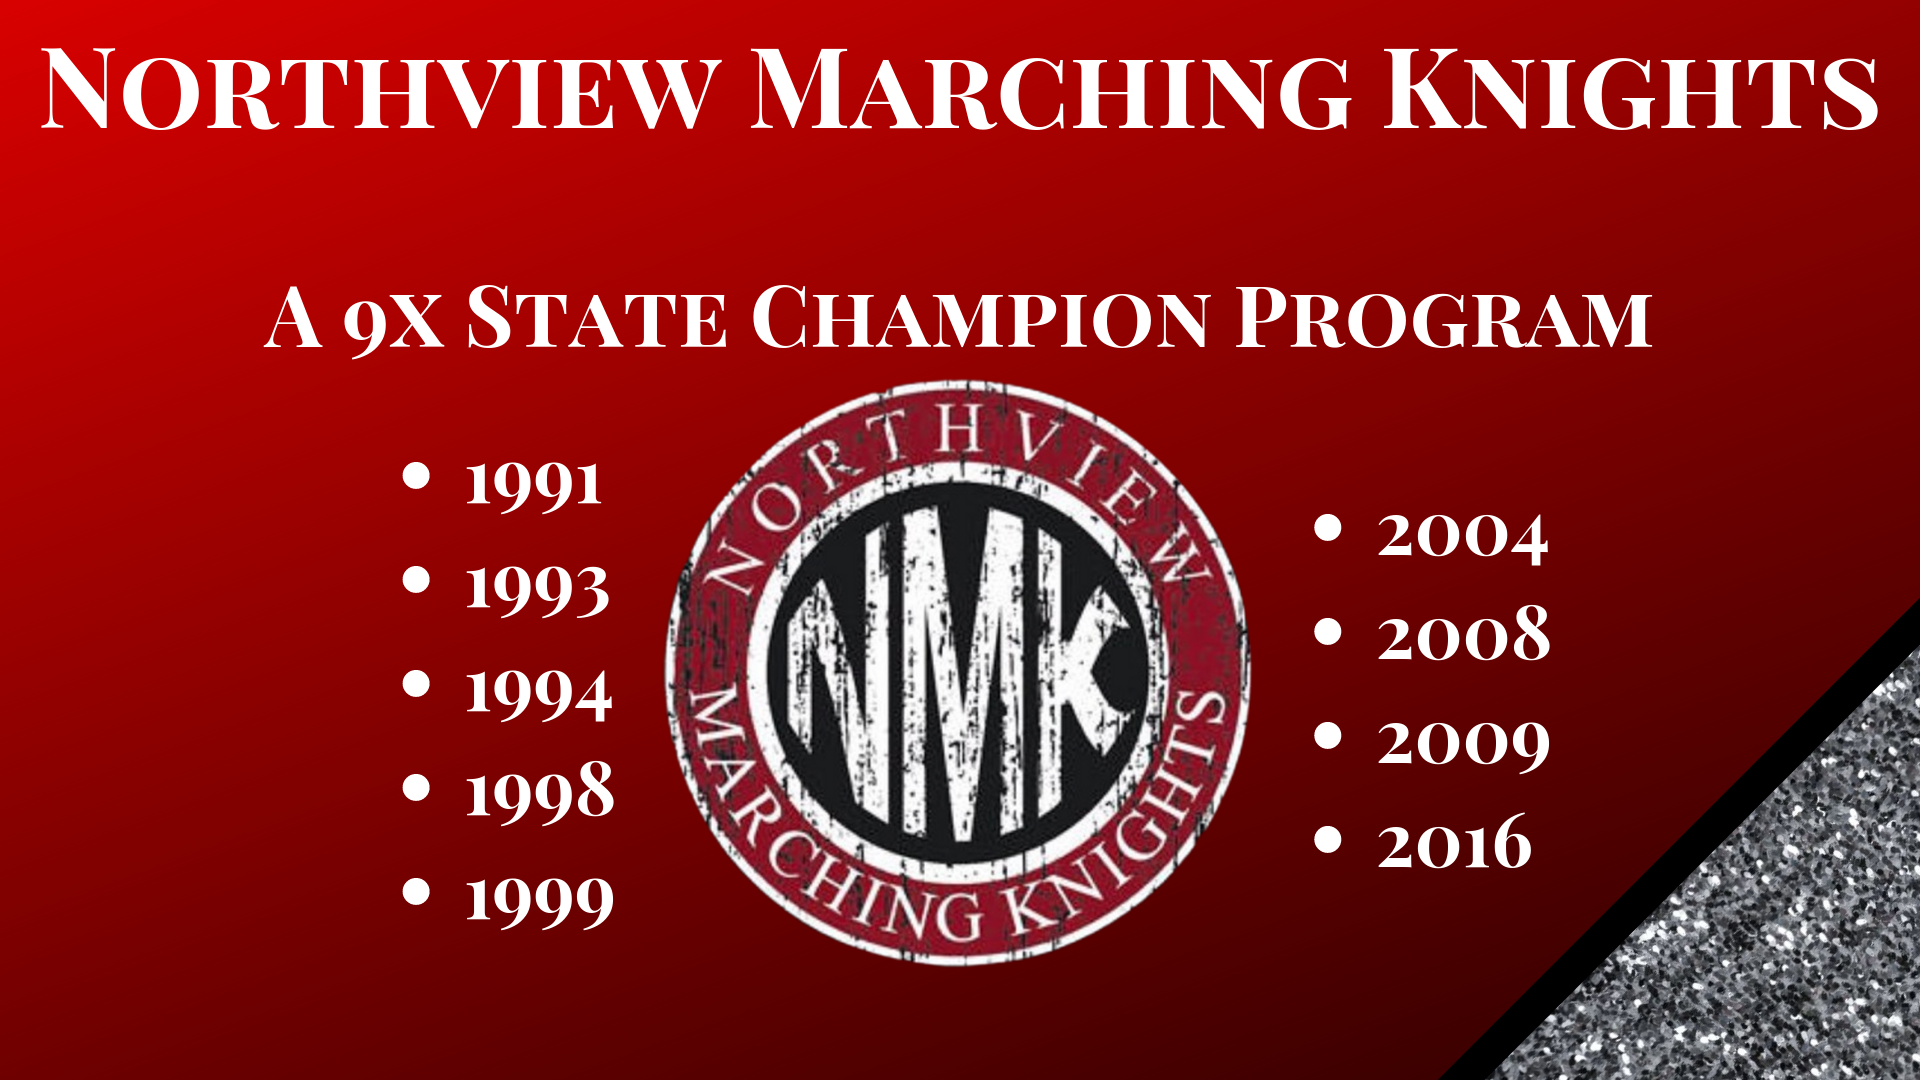 Copy of Northview Marching Knights.png